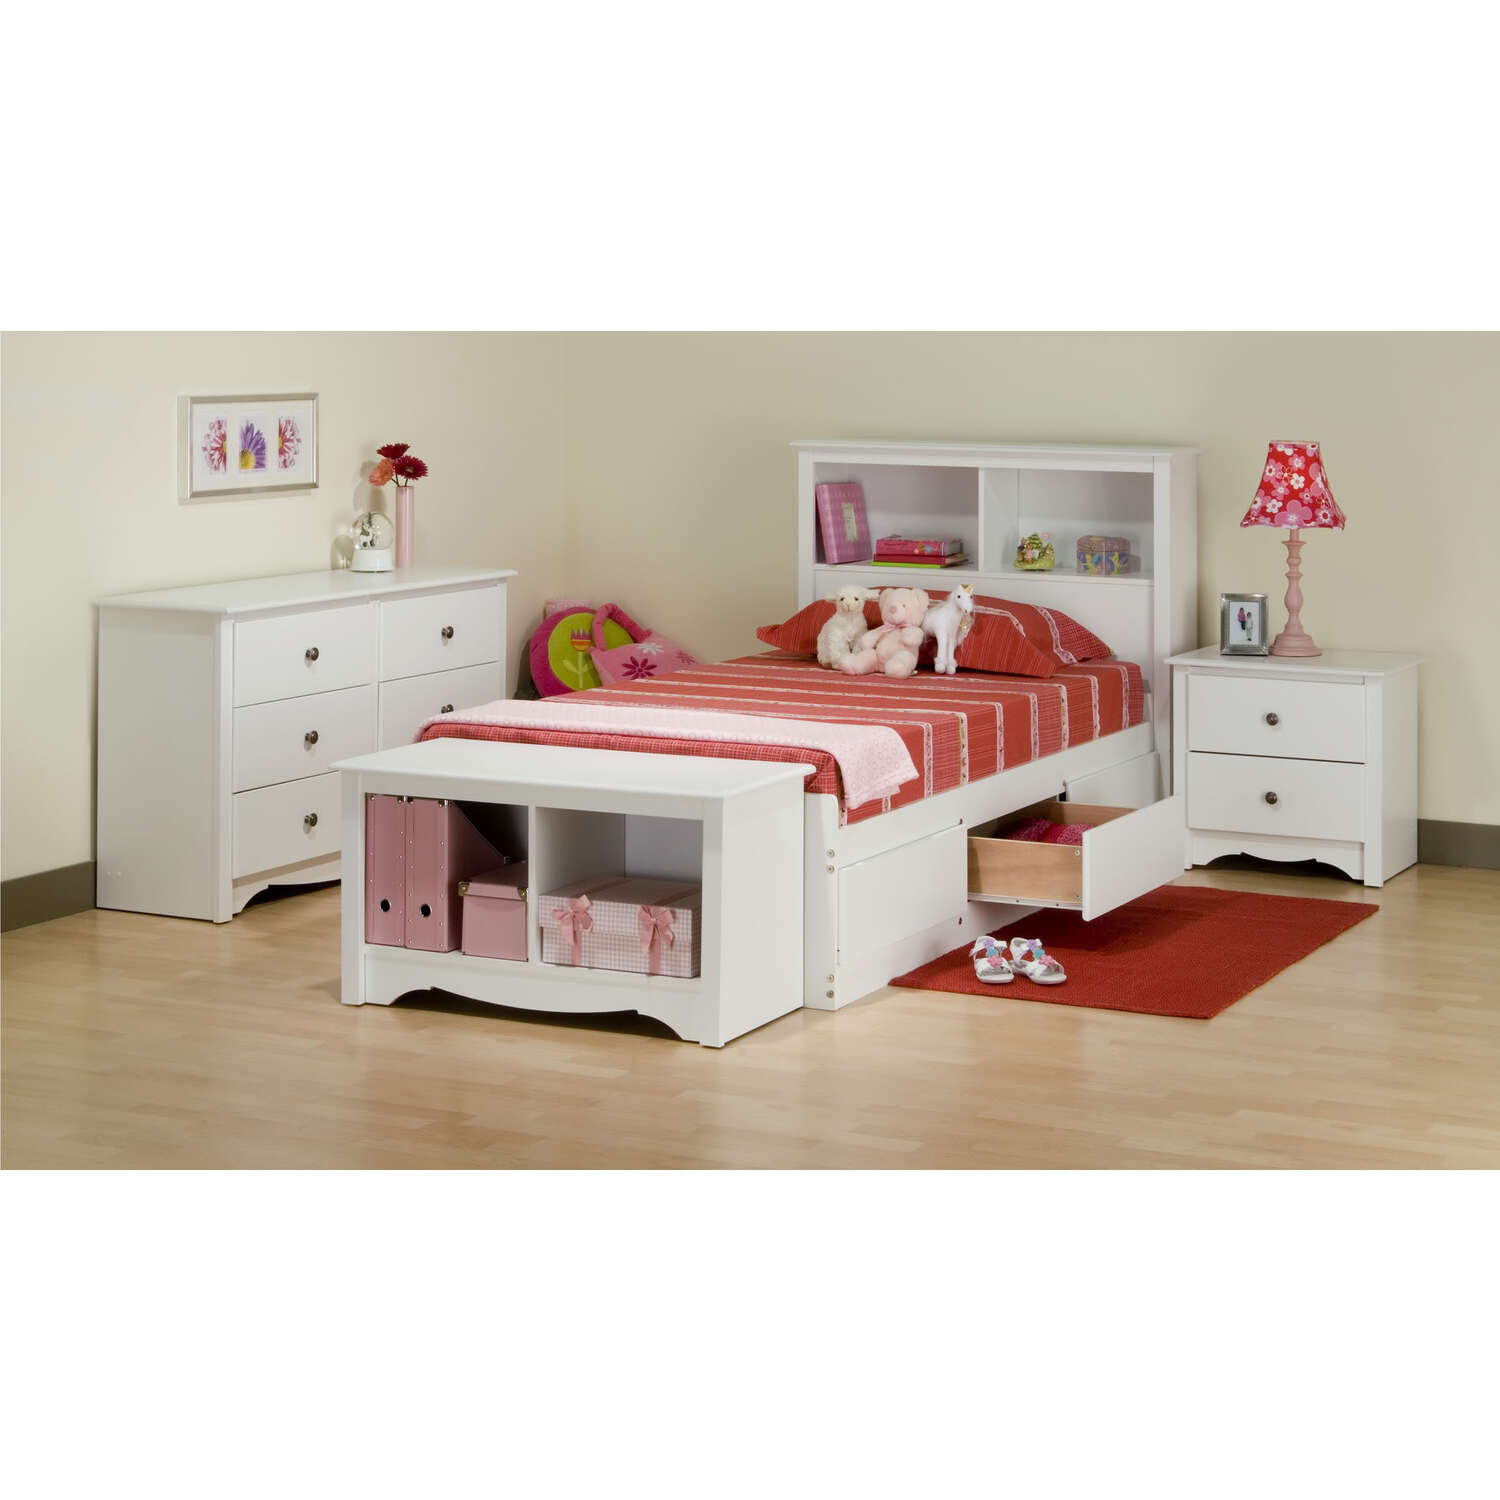 Monterey Bedroom Set - [WMTB5PC]